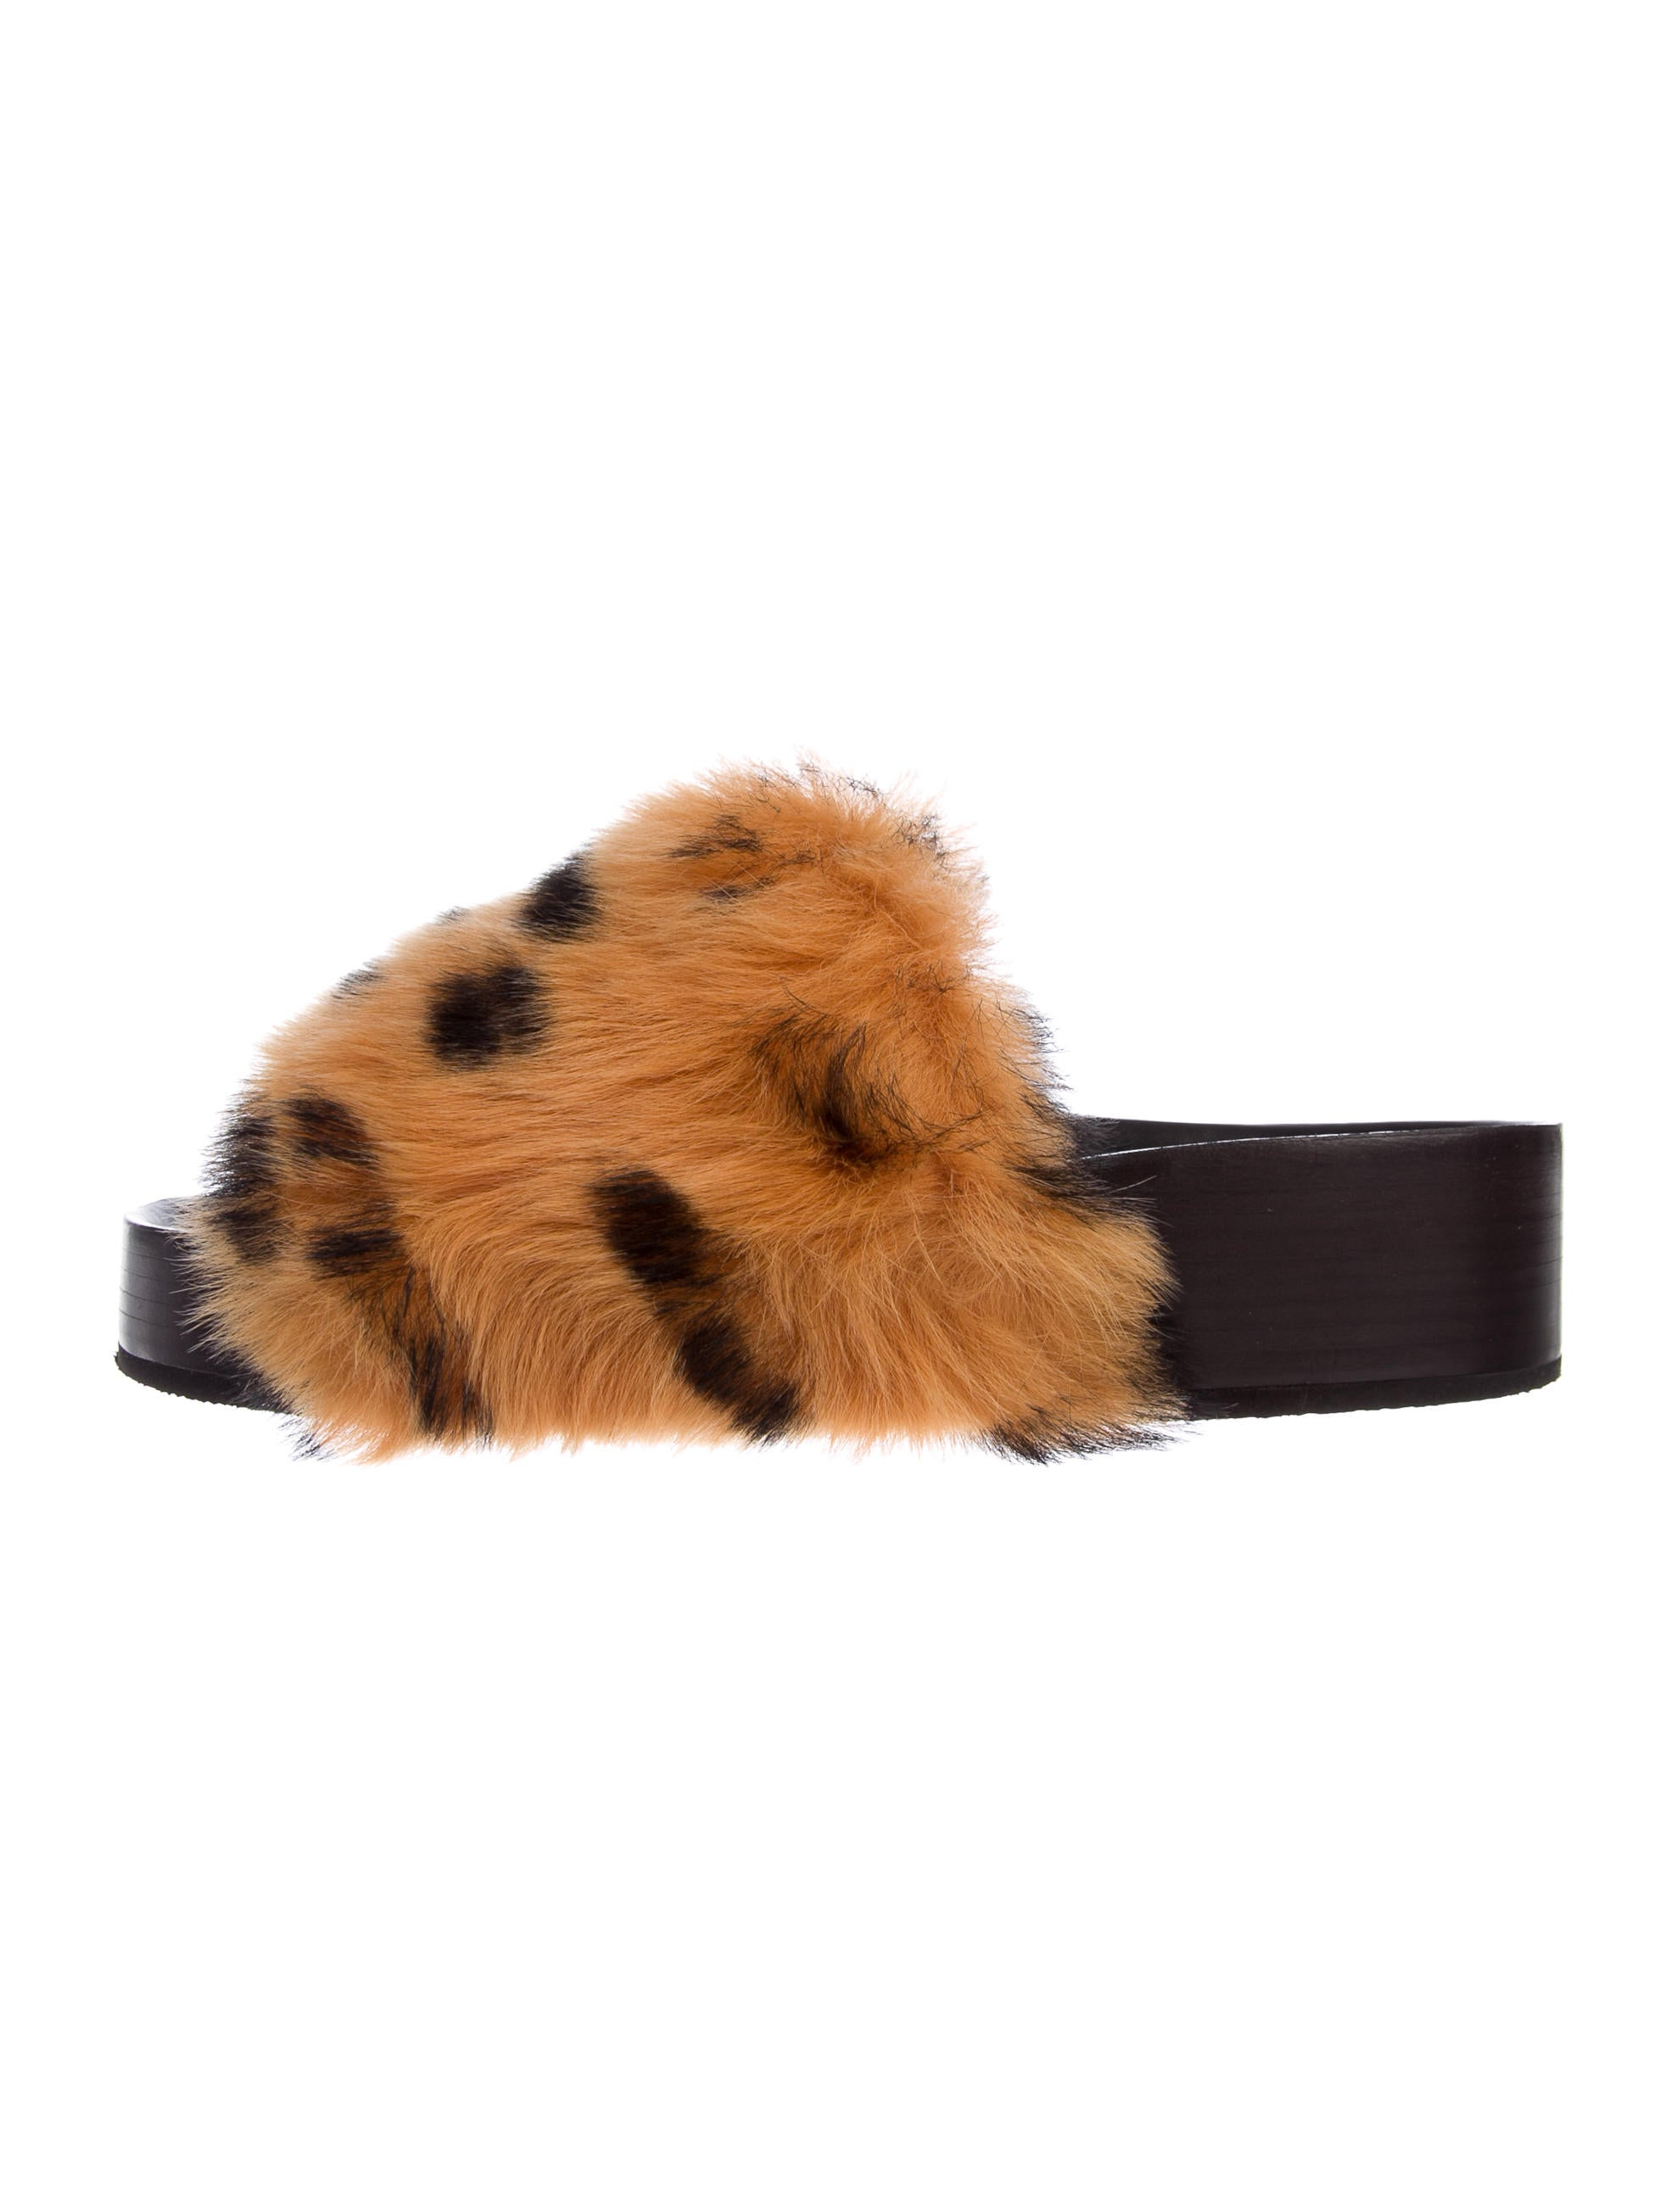 free shipping real Céline 2017 Shearling Slide Sandals w/ Tags free shipping official site cheap sale popular Vduz2Jg